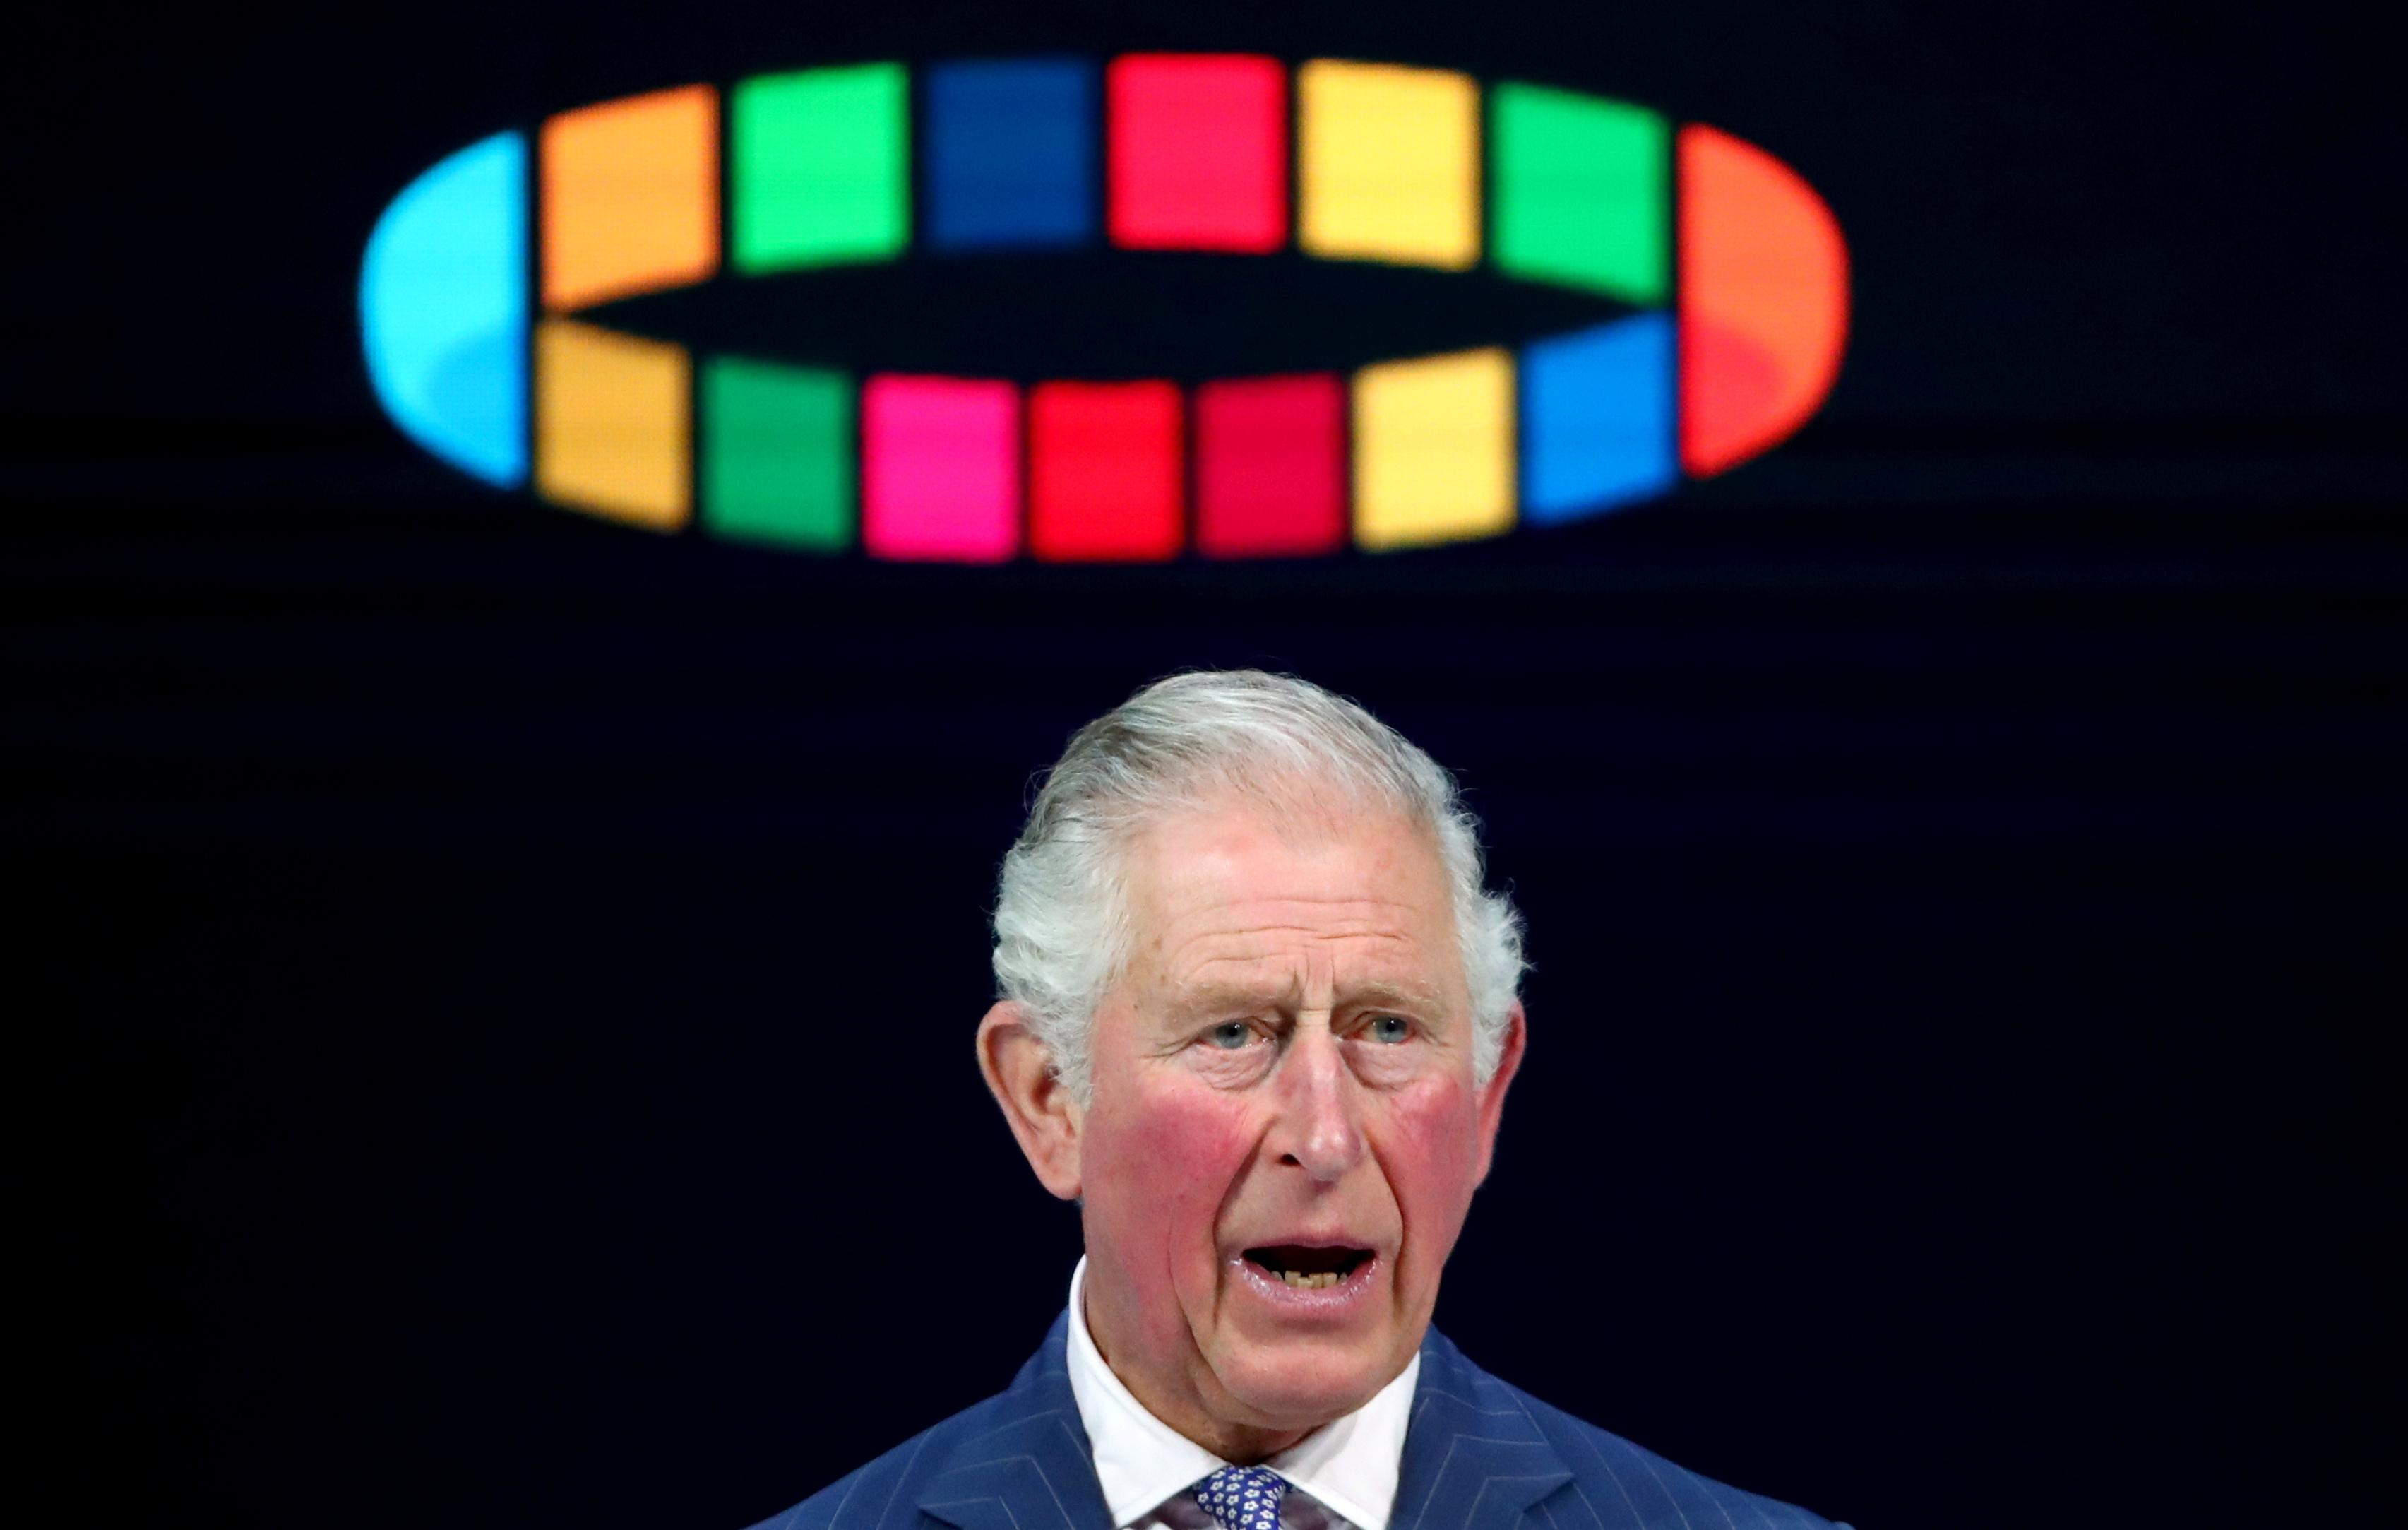 Prince Charles says climate change 'greatest threat ever' as he meets Greta Thunberg